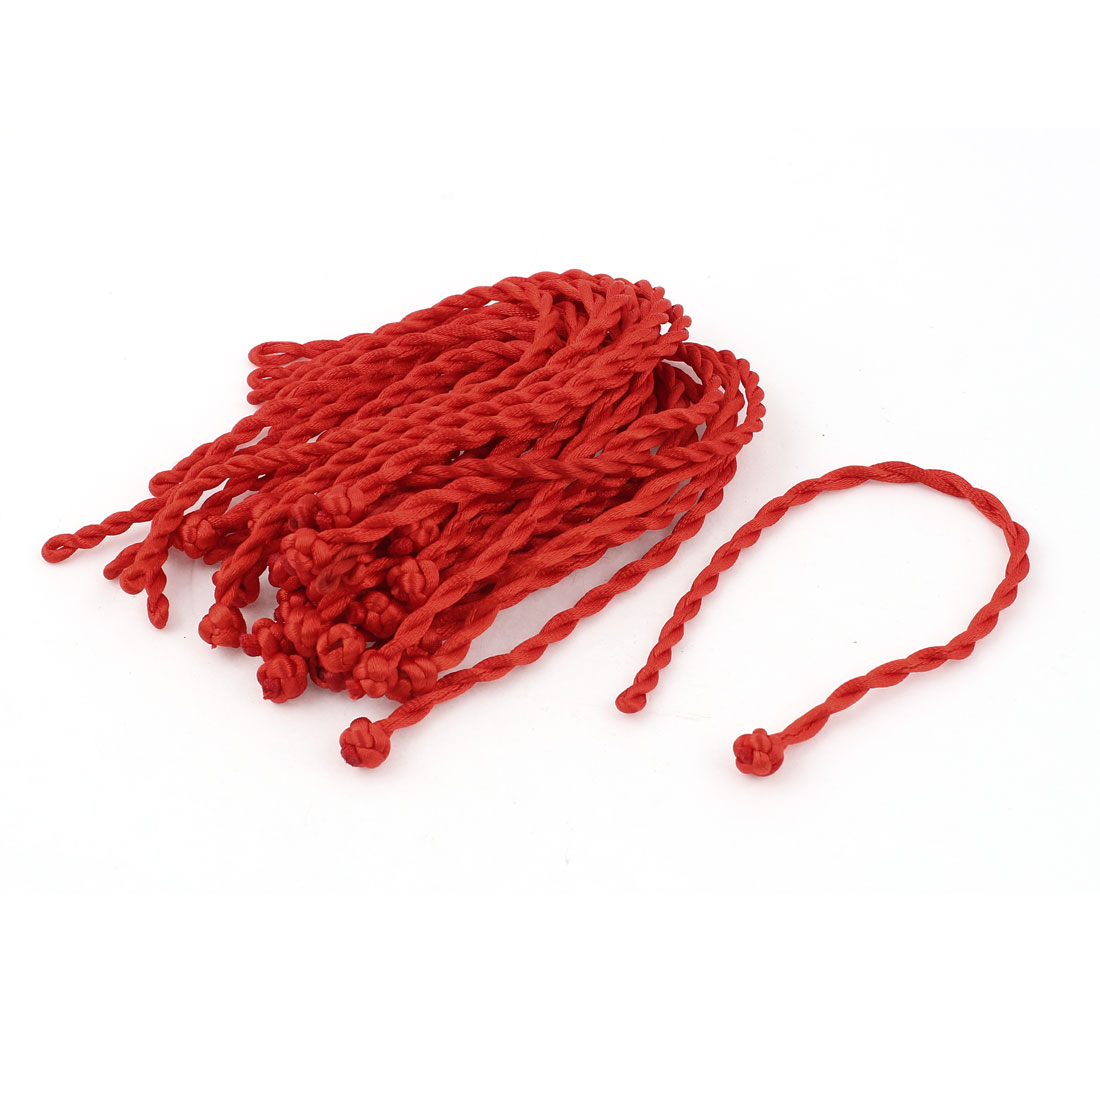 "27pcs 20cm 8"" Long Red Nylon Braided Lucky Strap DIY Wrist Decor Bracelet String Rope"